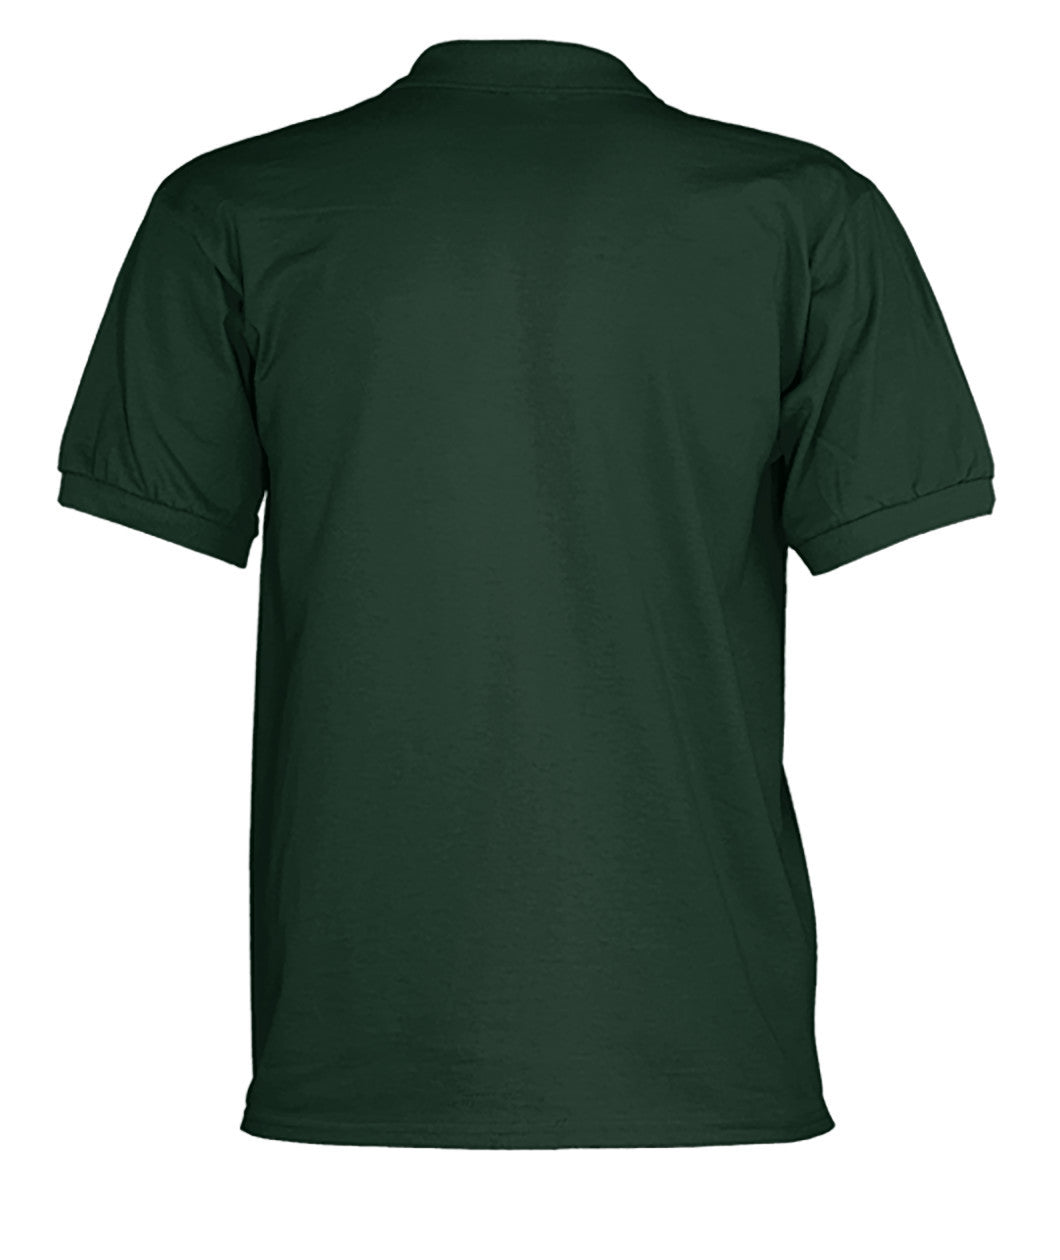 Golfer DAD shirt-Apparel - TEEHOT.COM